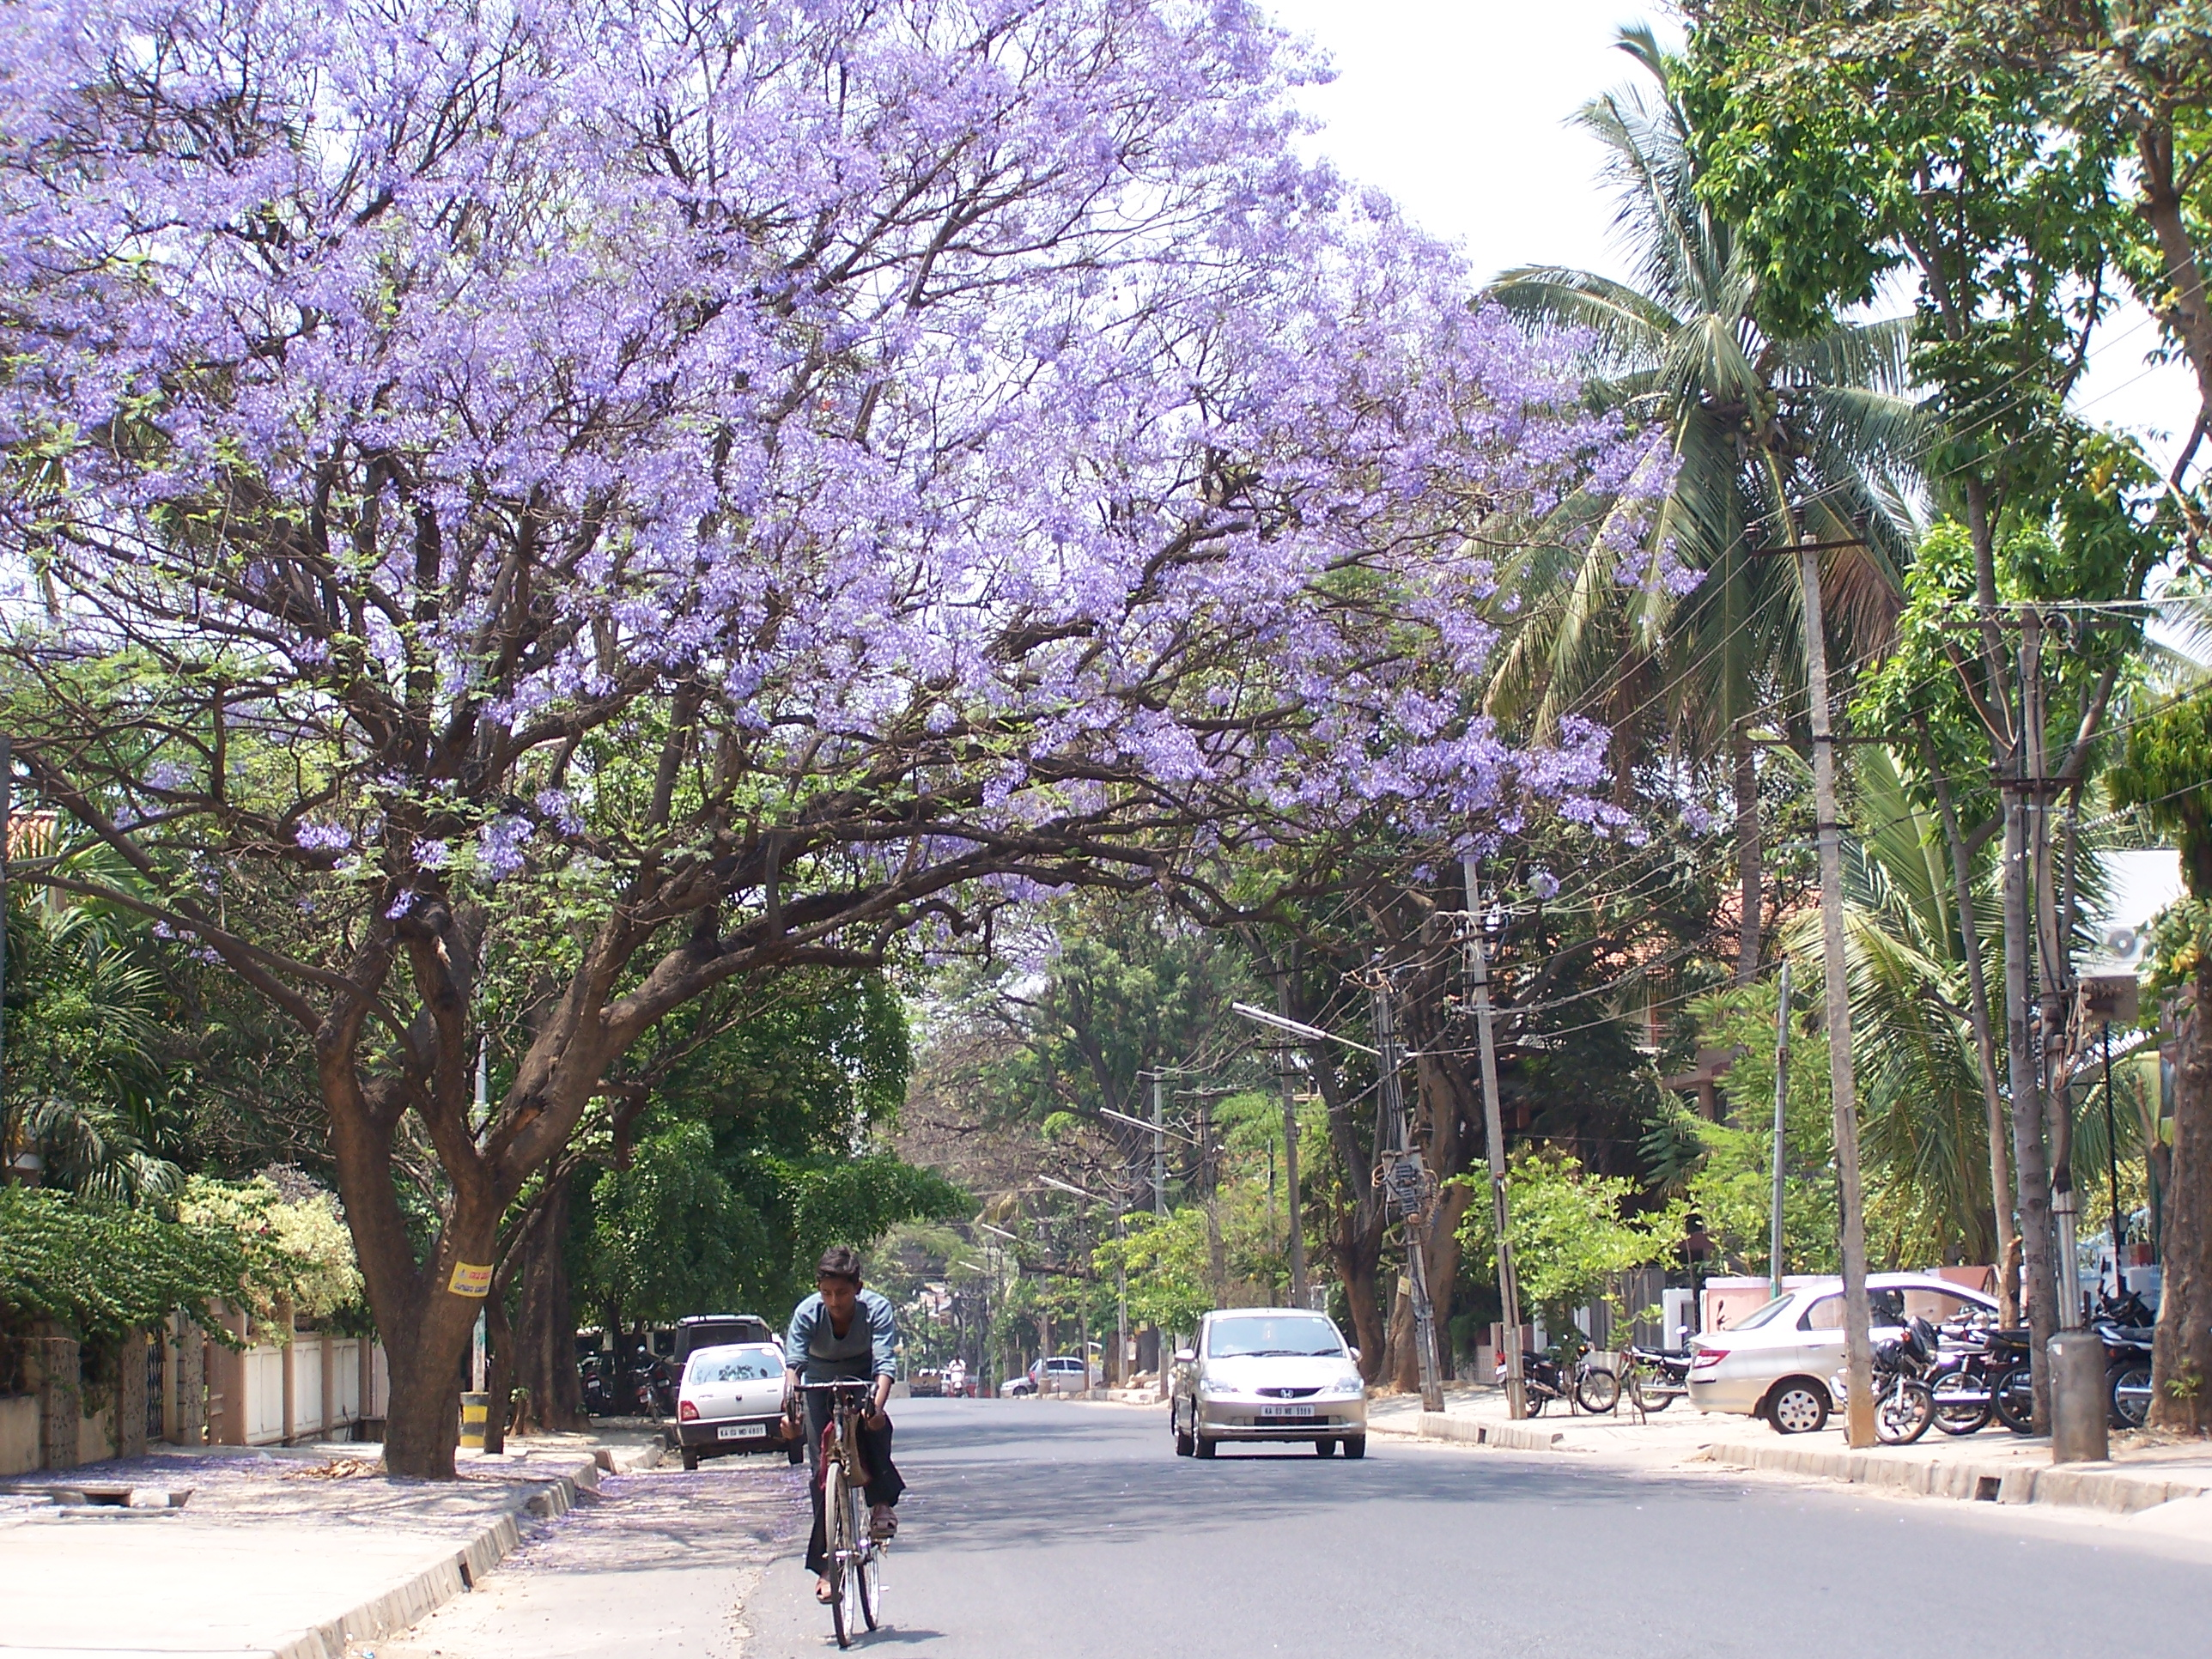 Anyone Know Those Tress With The Blooming Purple Flowers Home